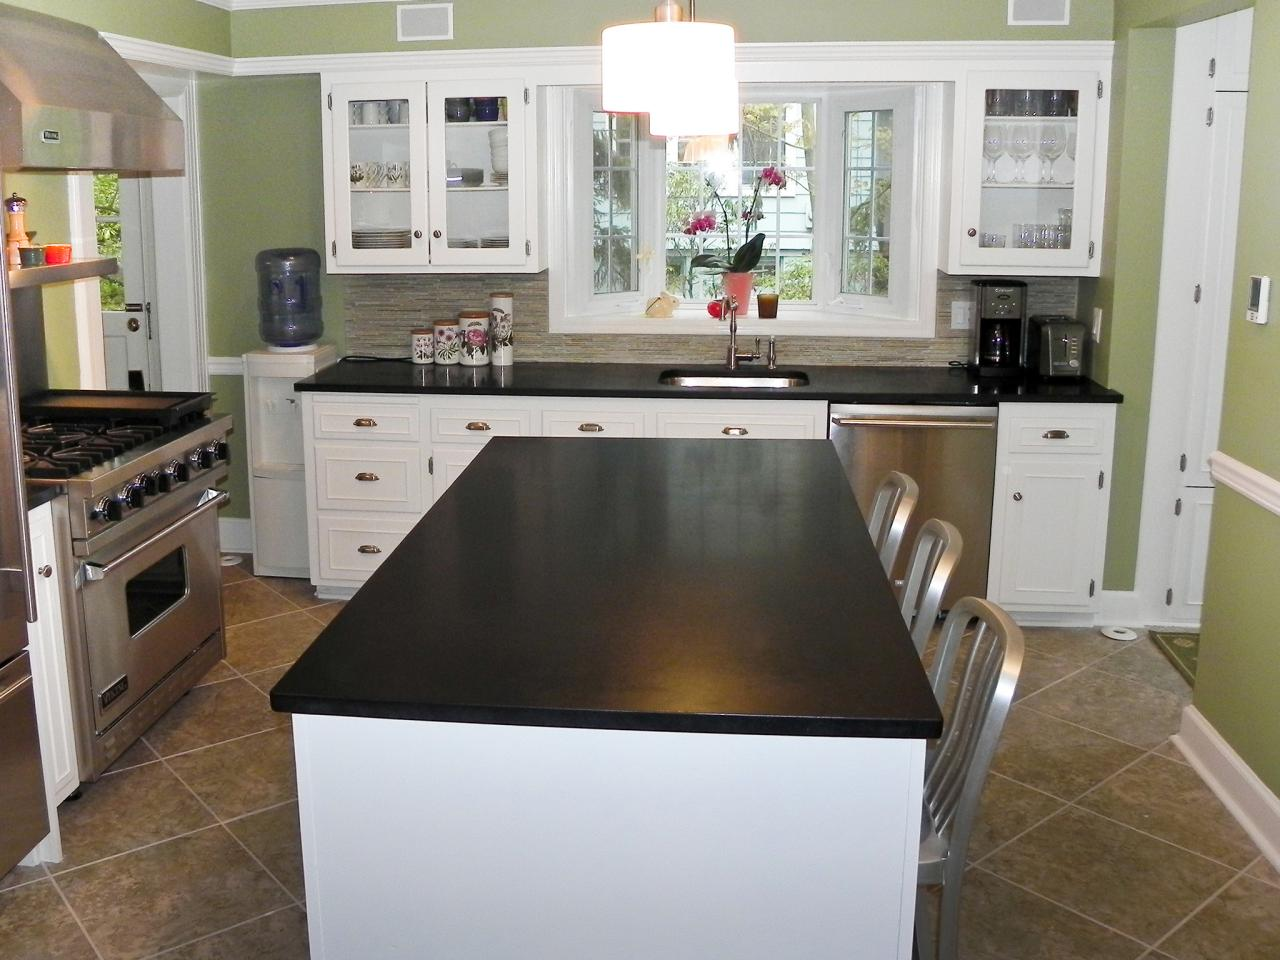 Image of: Black Granite Countertops Kitchen Images